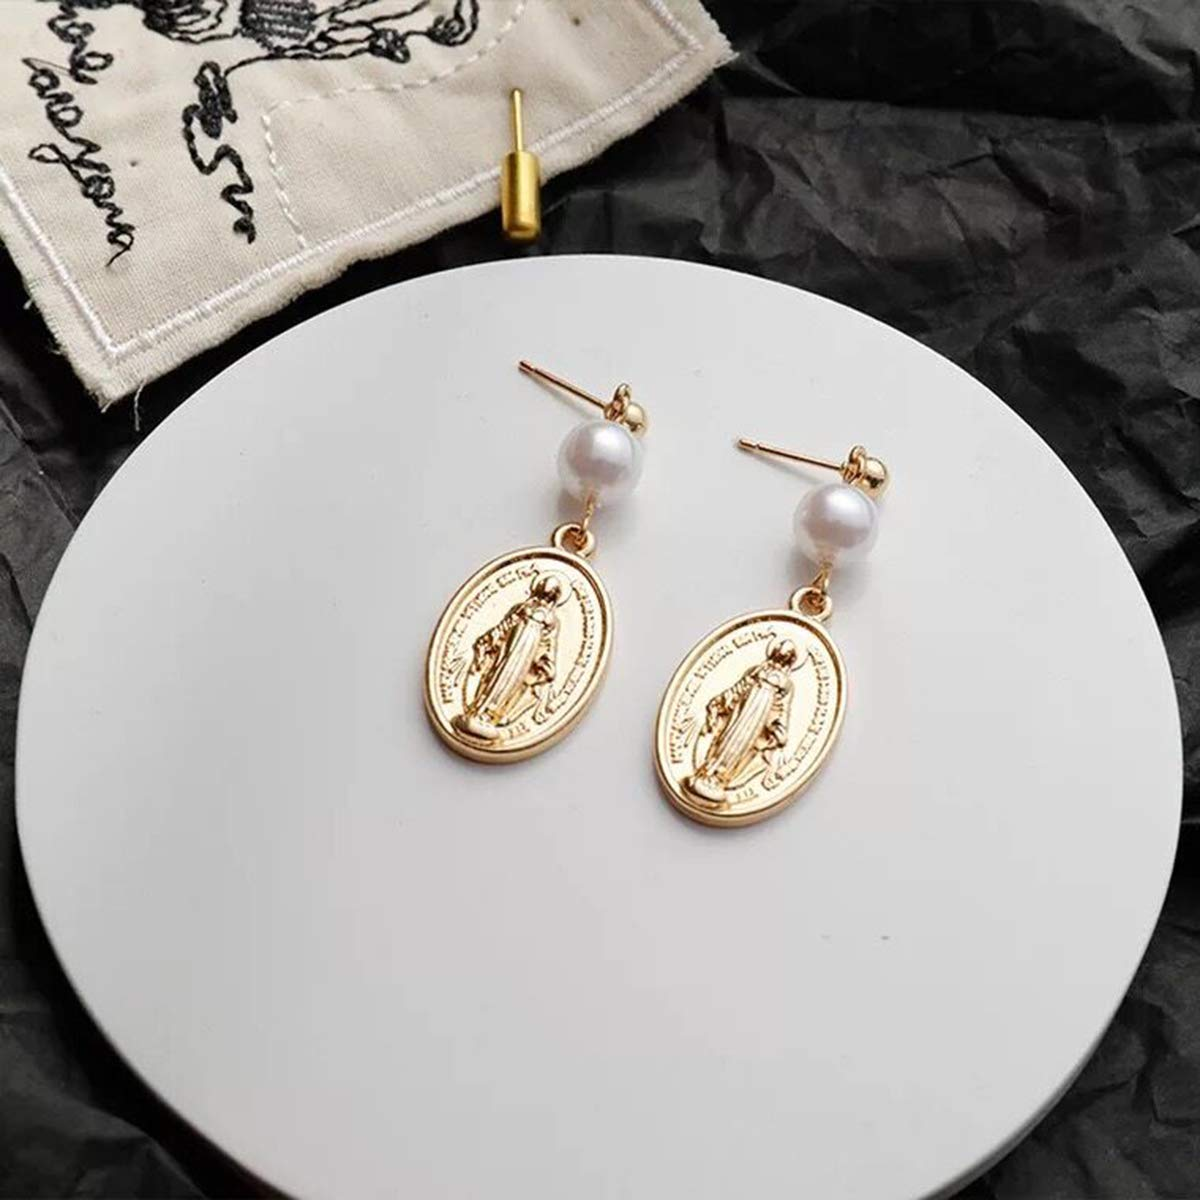 LANTAI 2 Pairs Virgin Mary and Coin Pearl Bead Earrings Set-Gold Dangle Earrings for Women Girls Gifts Jewelry